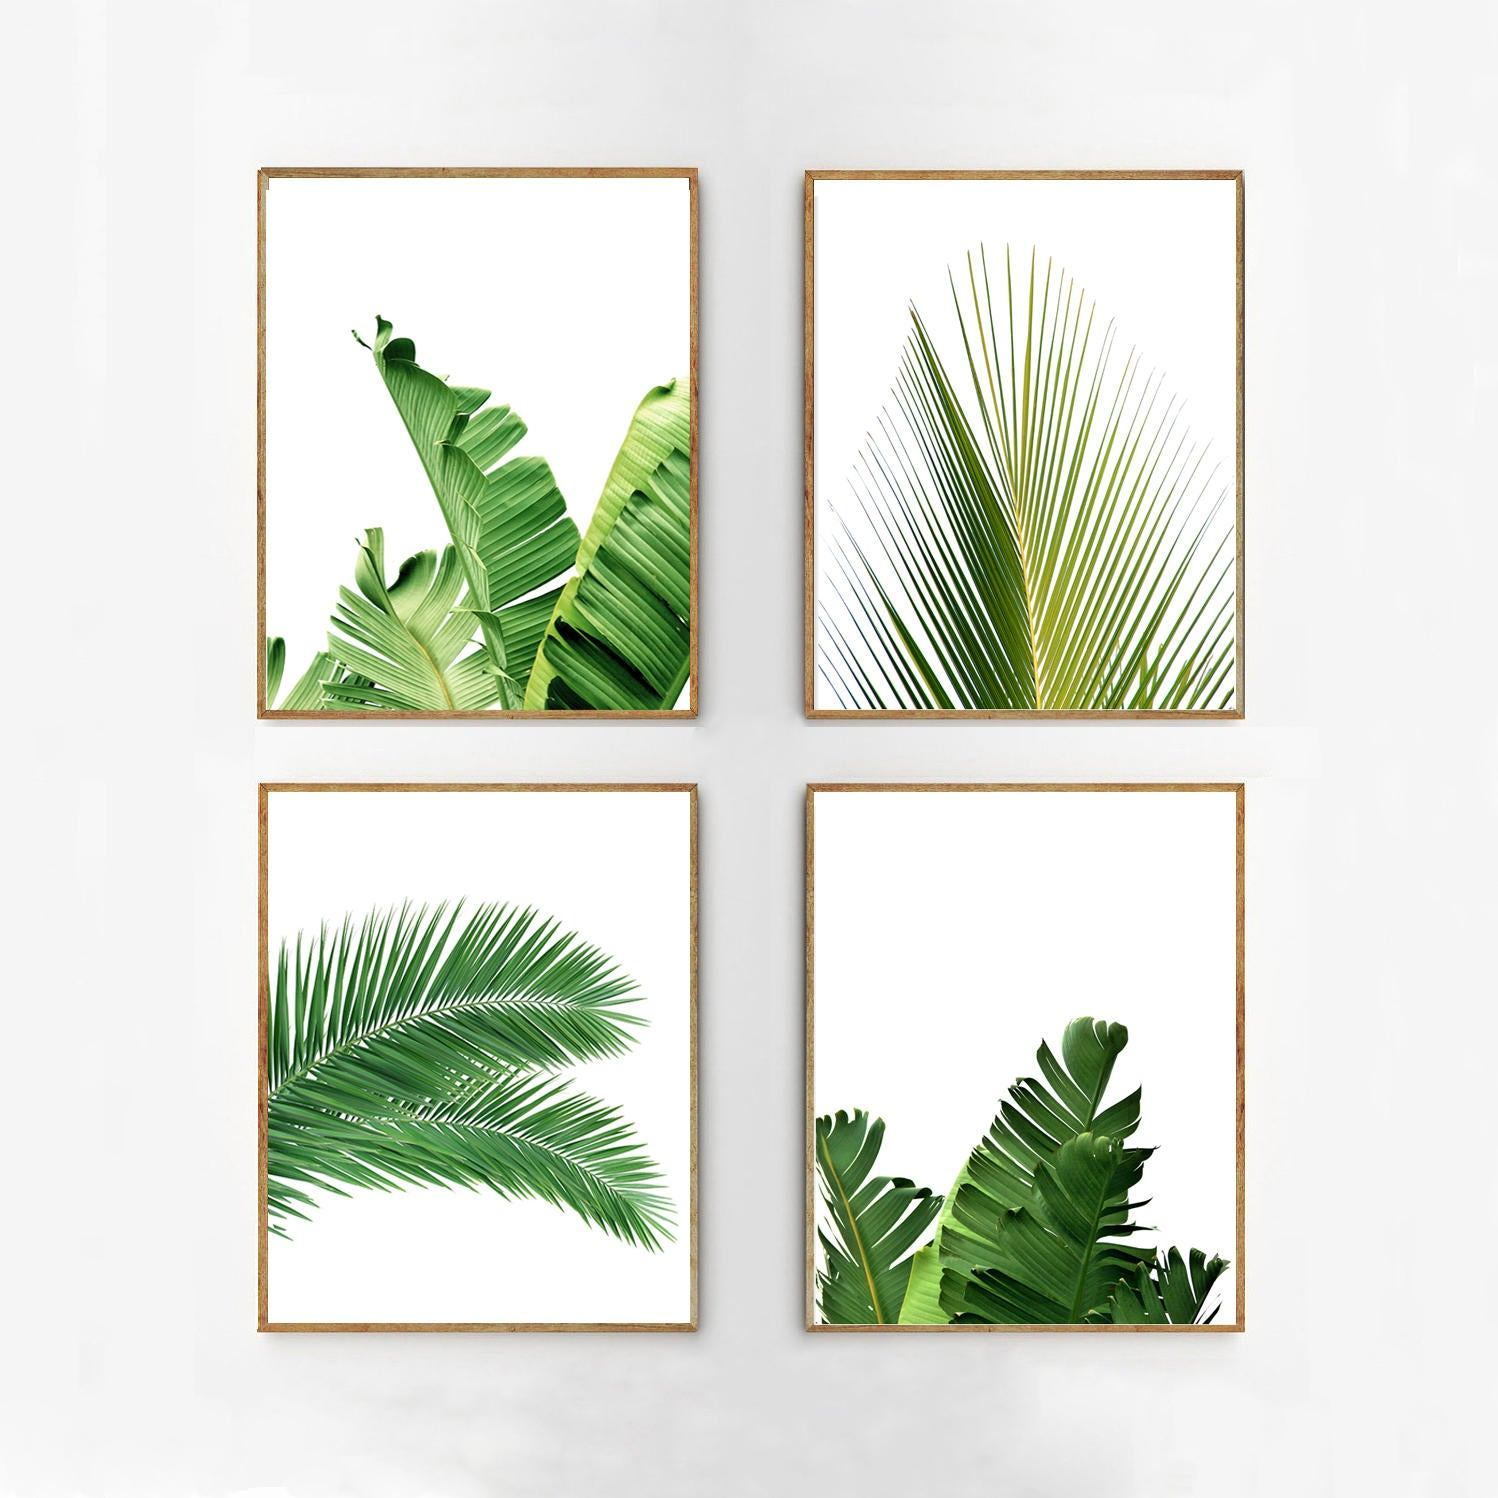 Desford Leaf Wall Decor By Charlton Home throughout Most Up-to-Date Leaf Wall Art - Ronniebrownlifesystems